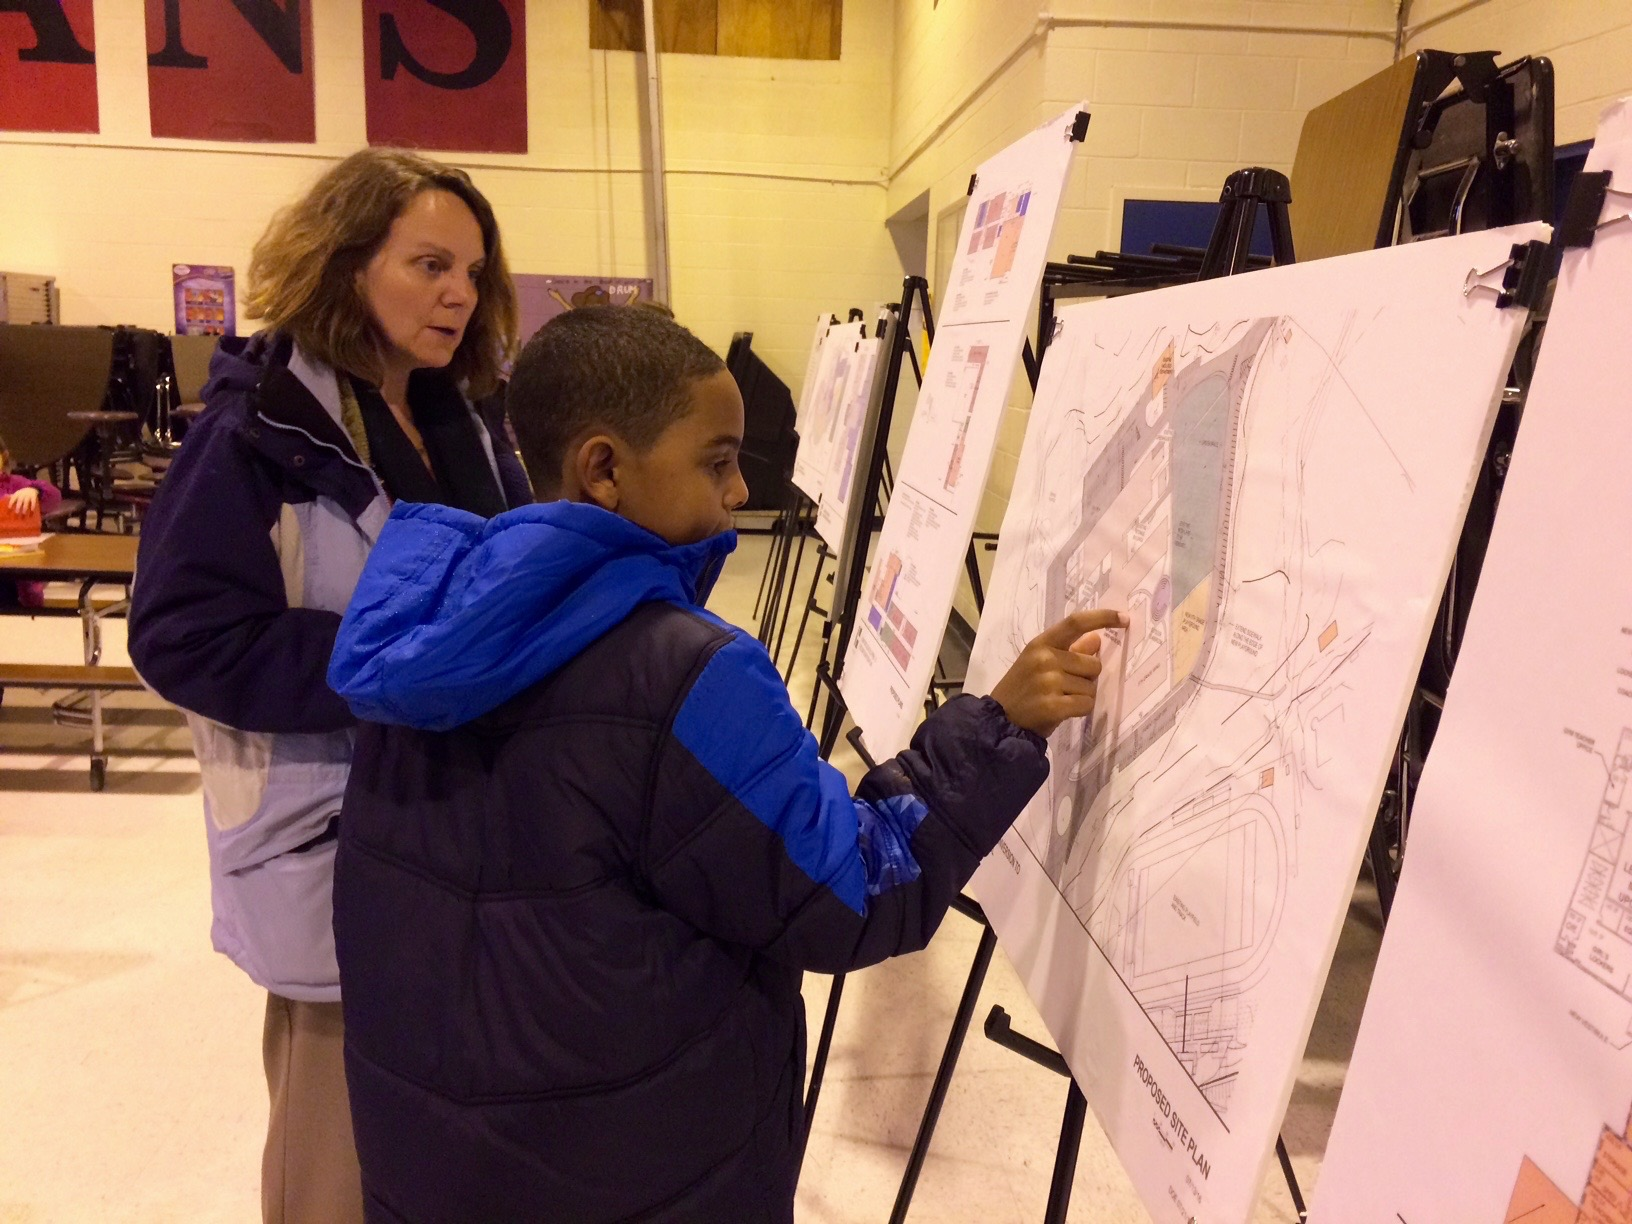 Lynda Butts and her son Micah Butts, a student at Margaret Chase Smith School in Sanford, takes a look at plans for Sanford's elementary and middle school renovation projects at a meeting Tuesday. -TAMMY WELLS/Journal Tribune